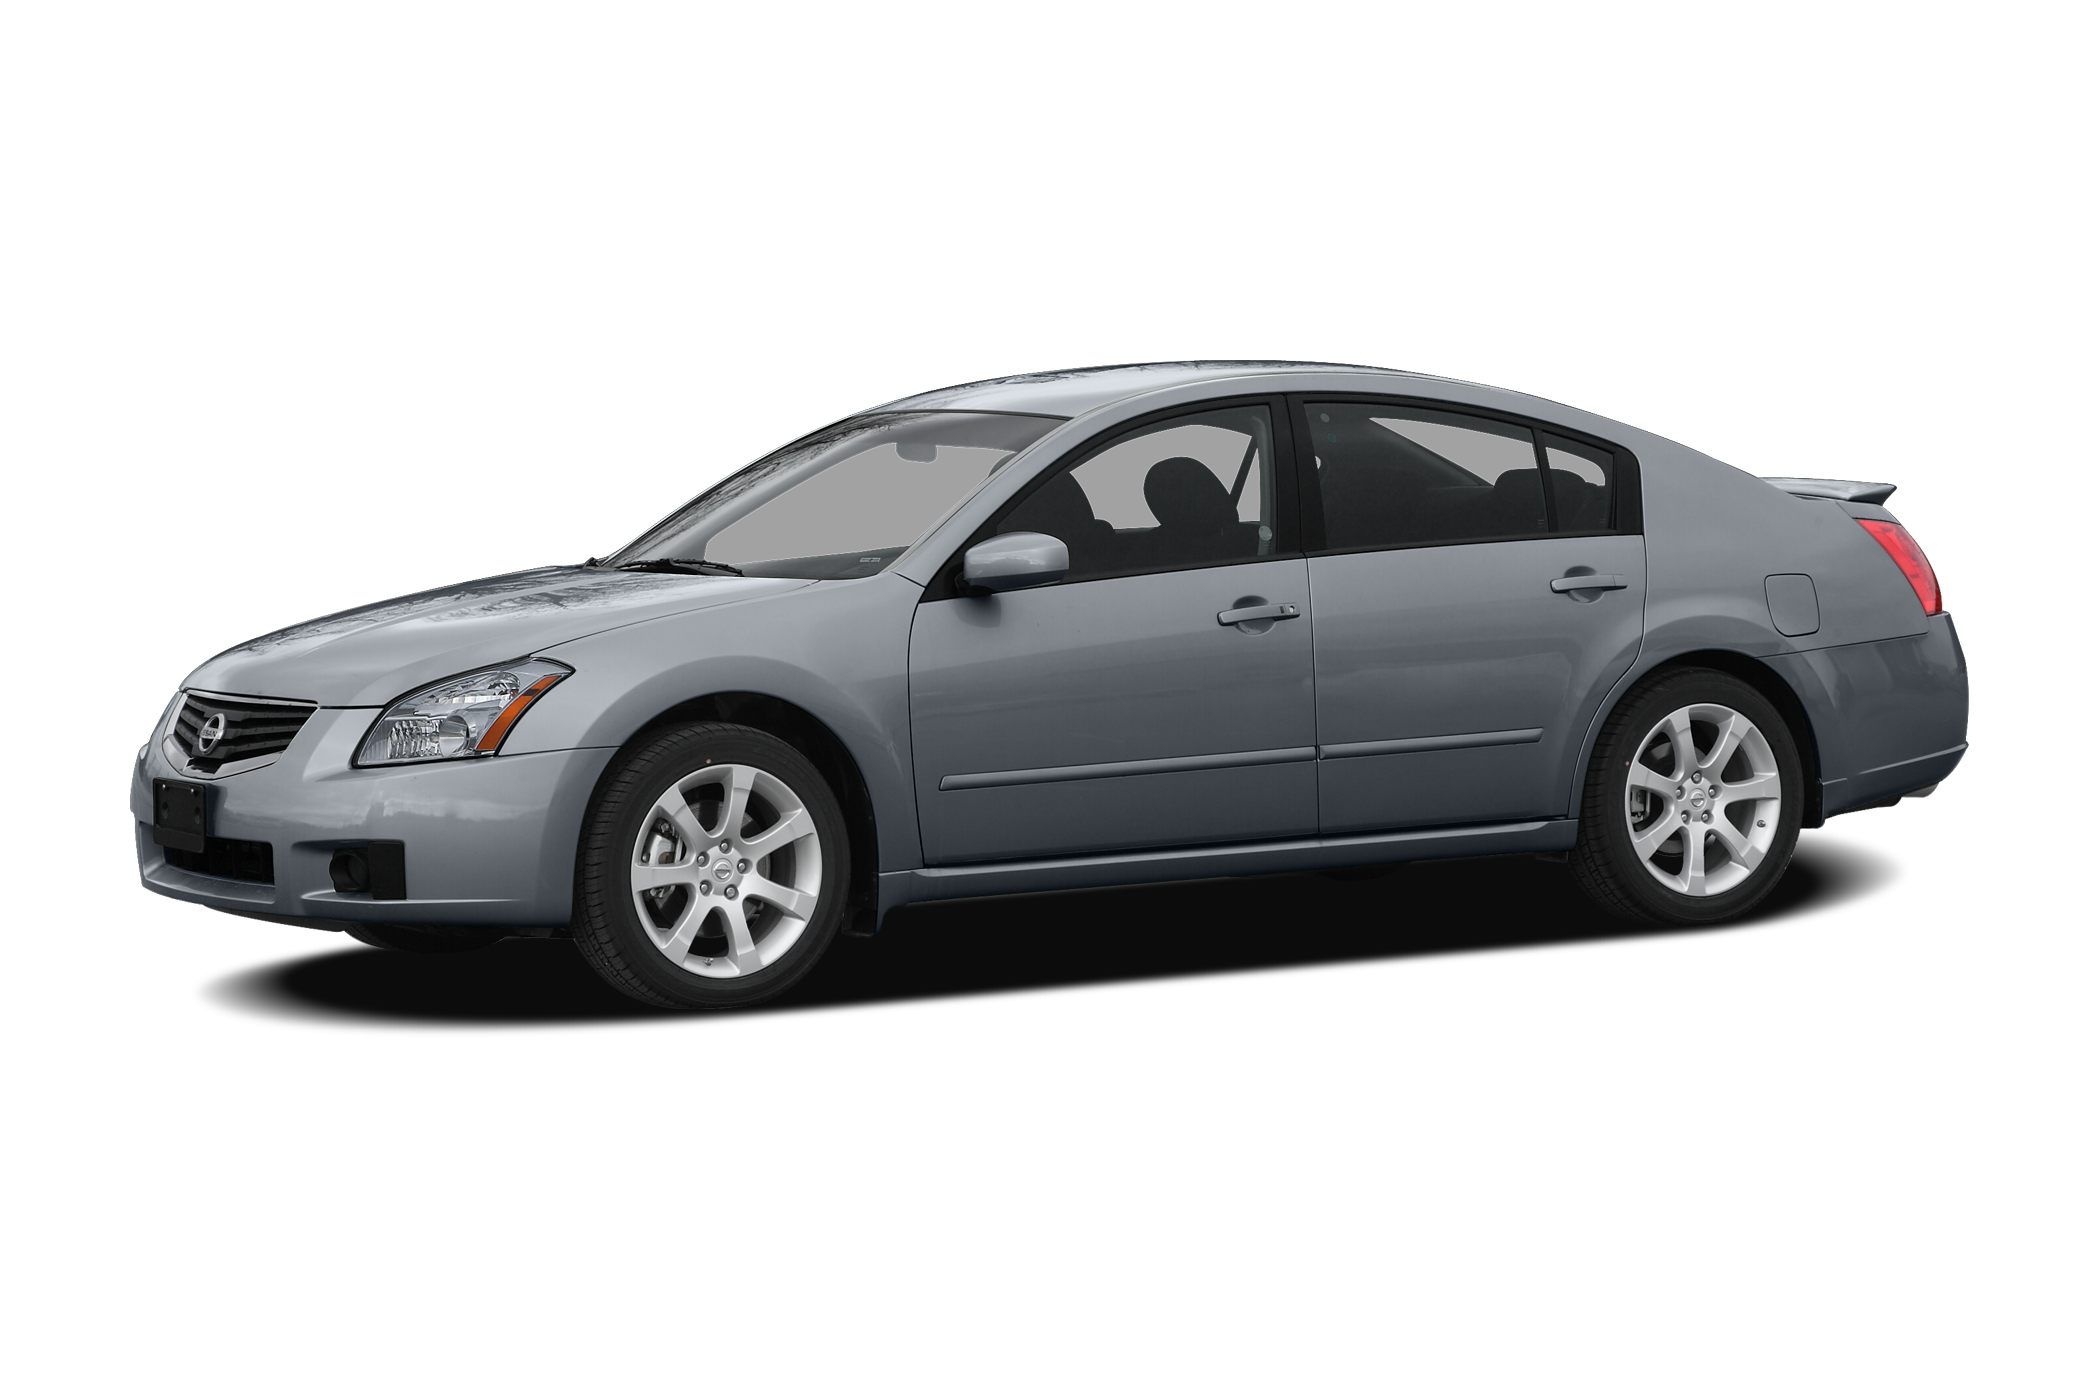 2006 Nissan Maxima SE Sedan for sale in Lynnwood for $0 with 93,933 miles